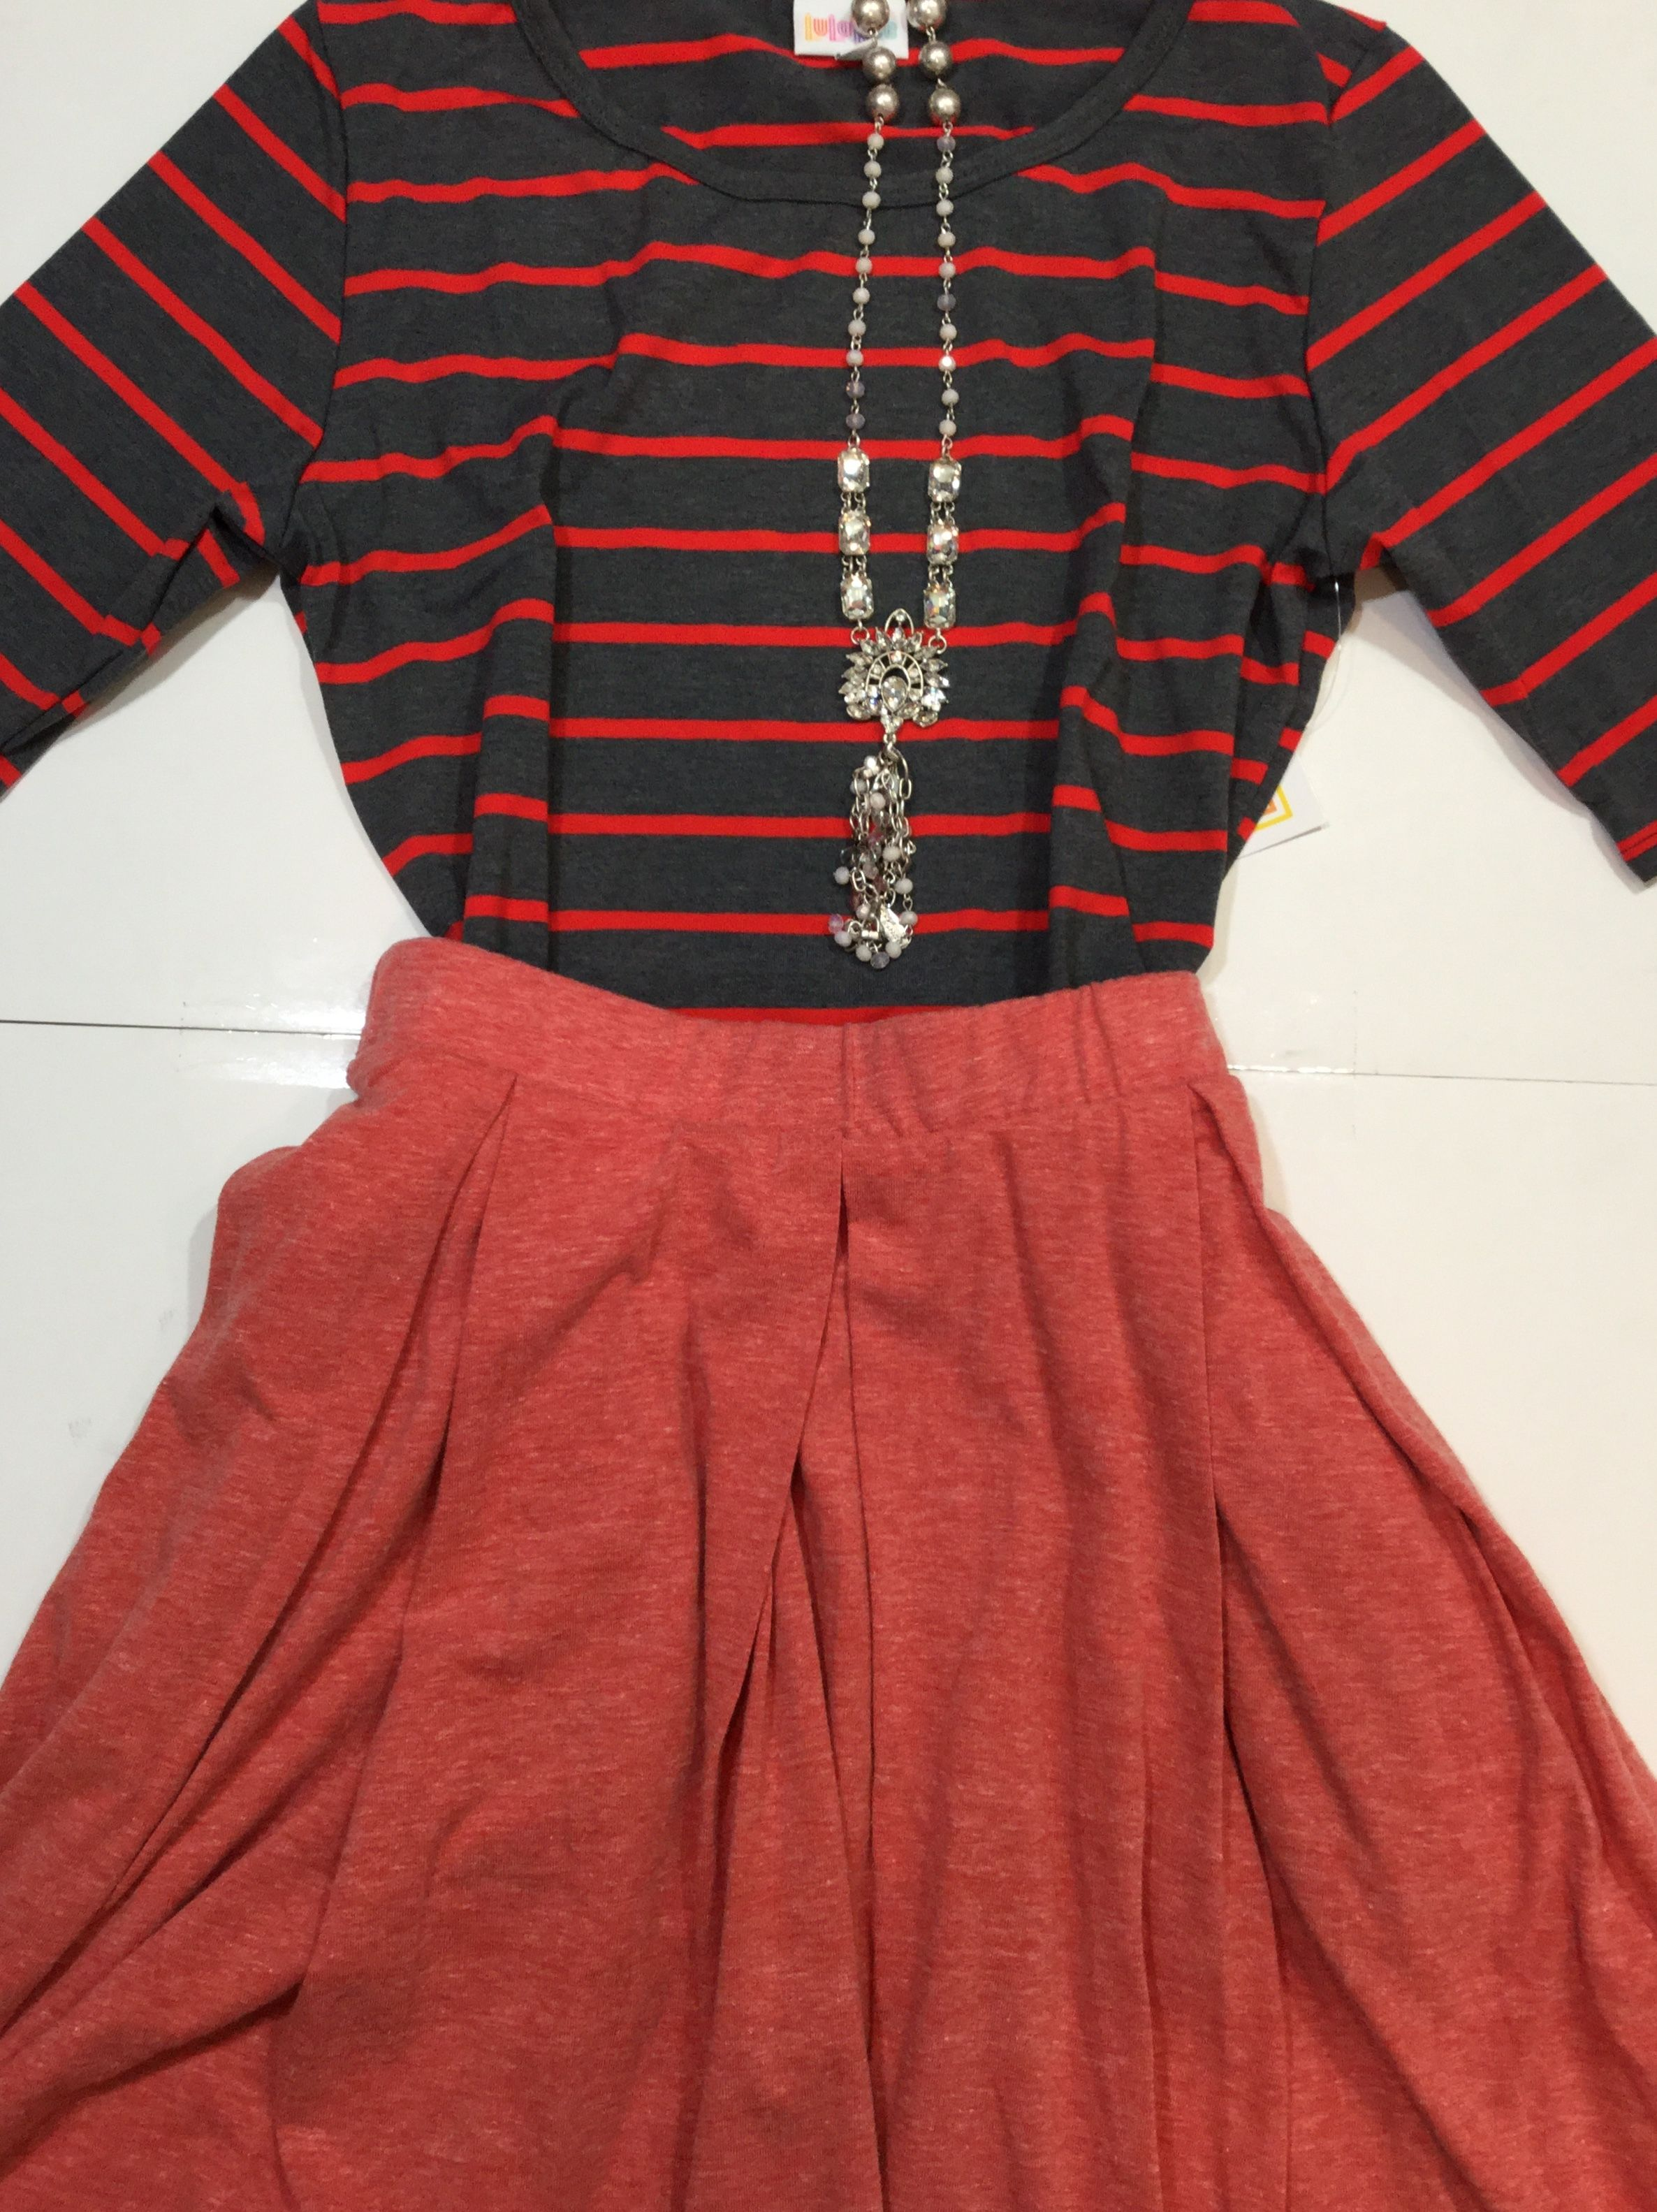 b740758f80eb LuLaRoe outfit. Great styling ideas for Spring and summer. For more ...